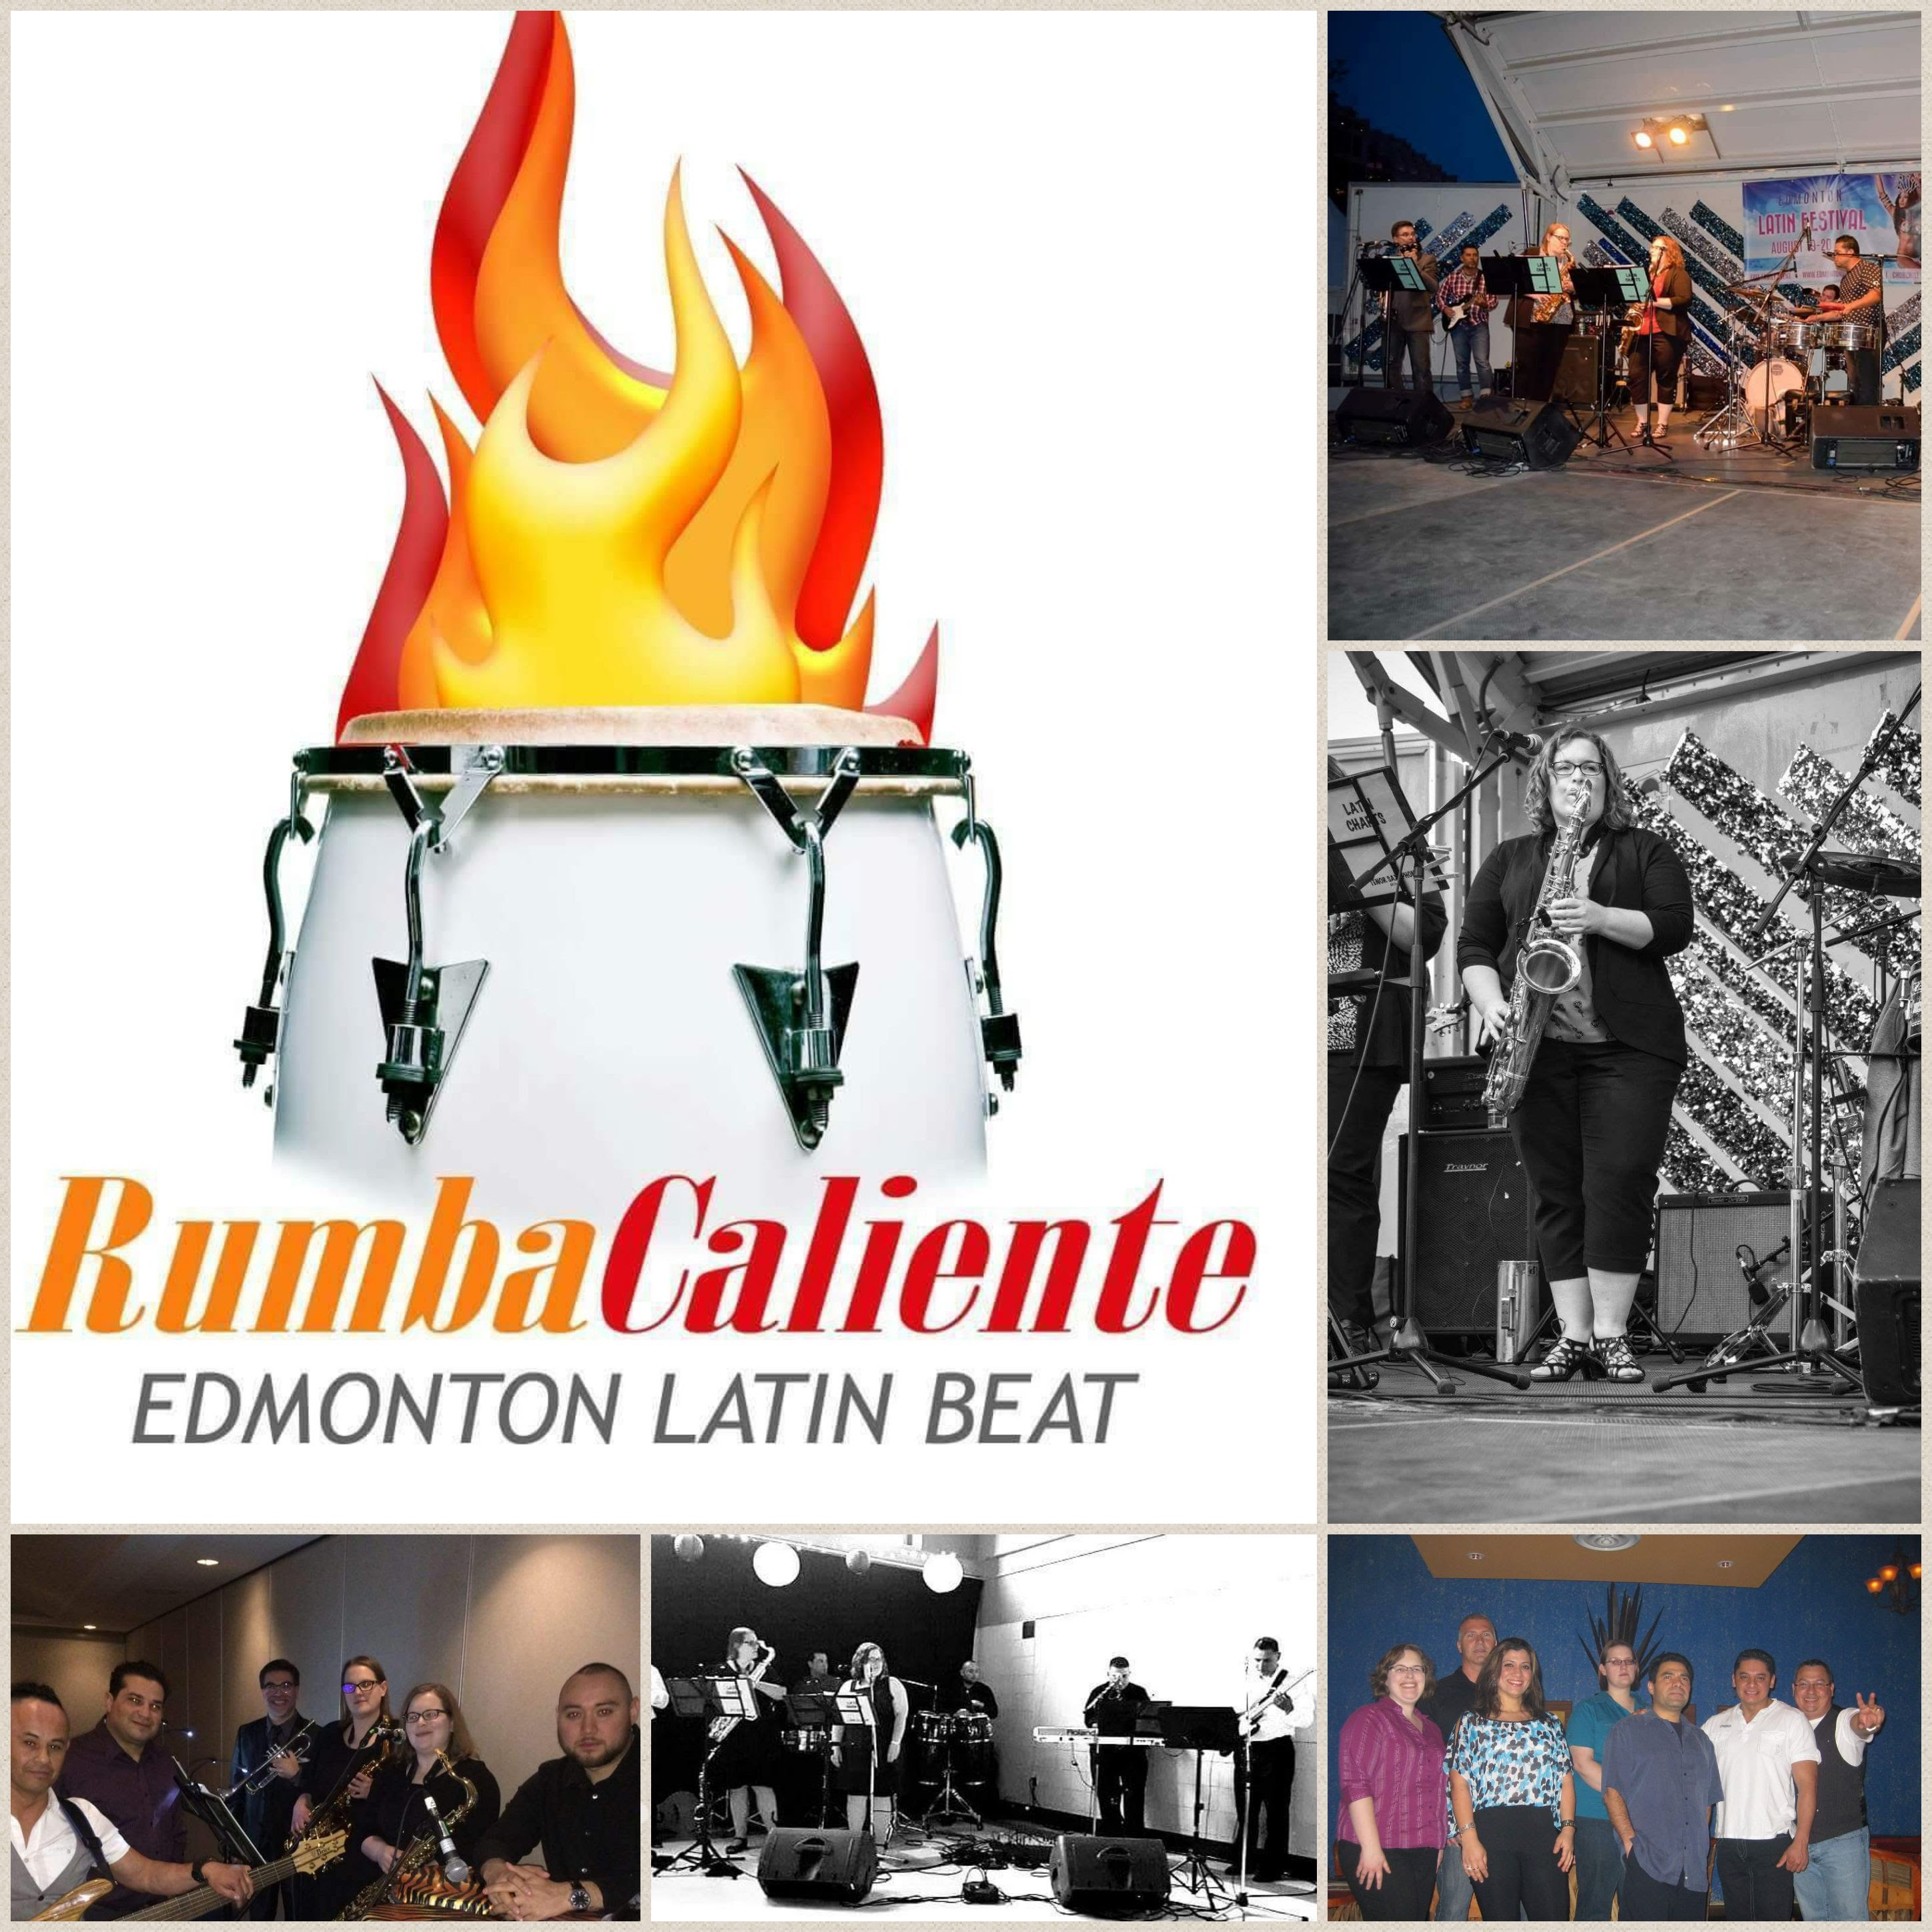 Rumba Caliente Band - default icon